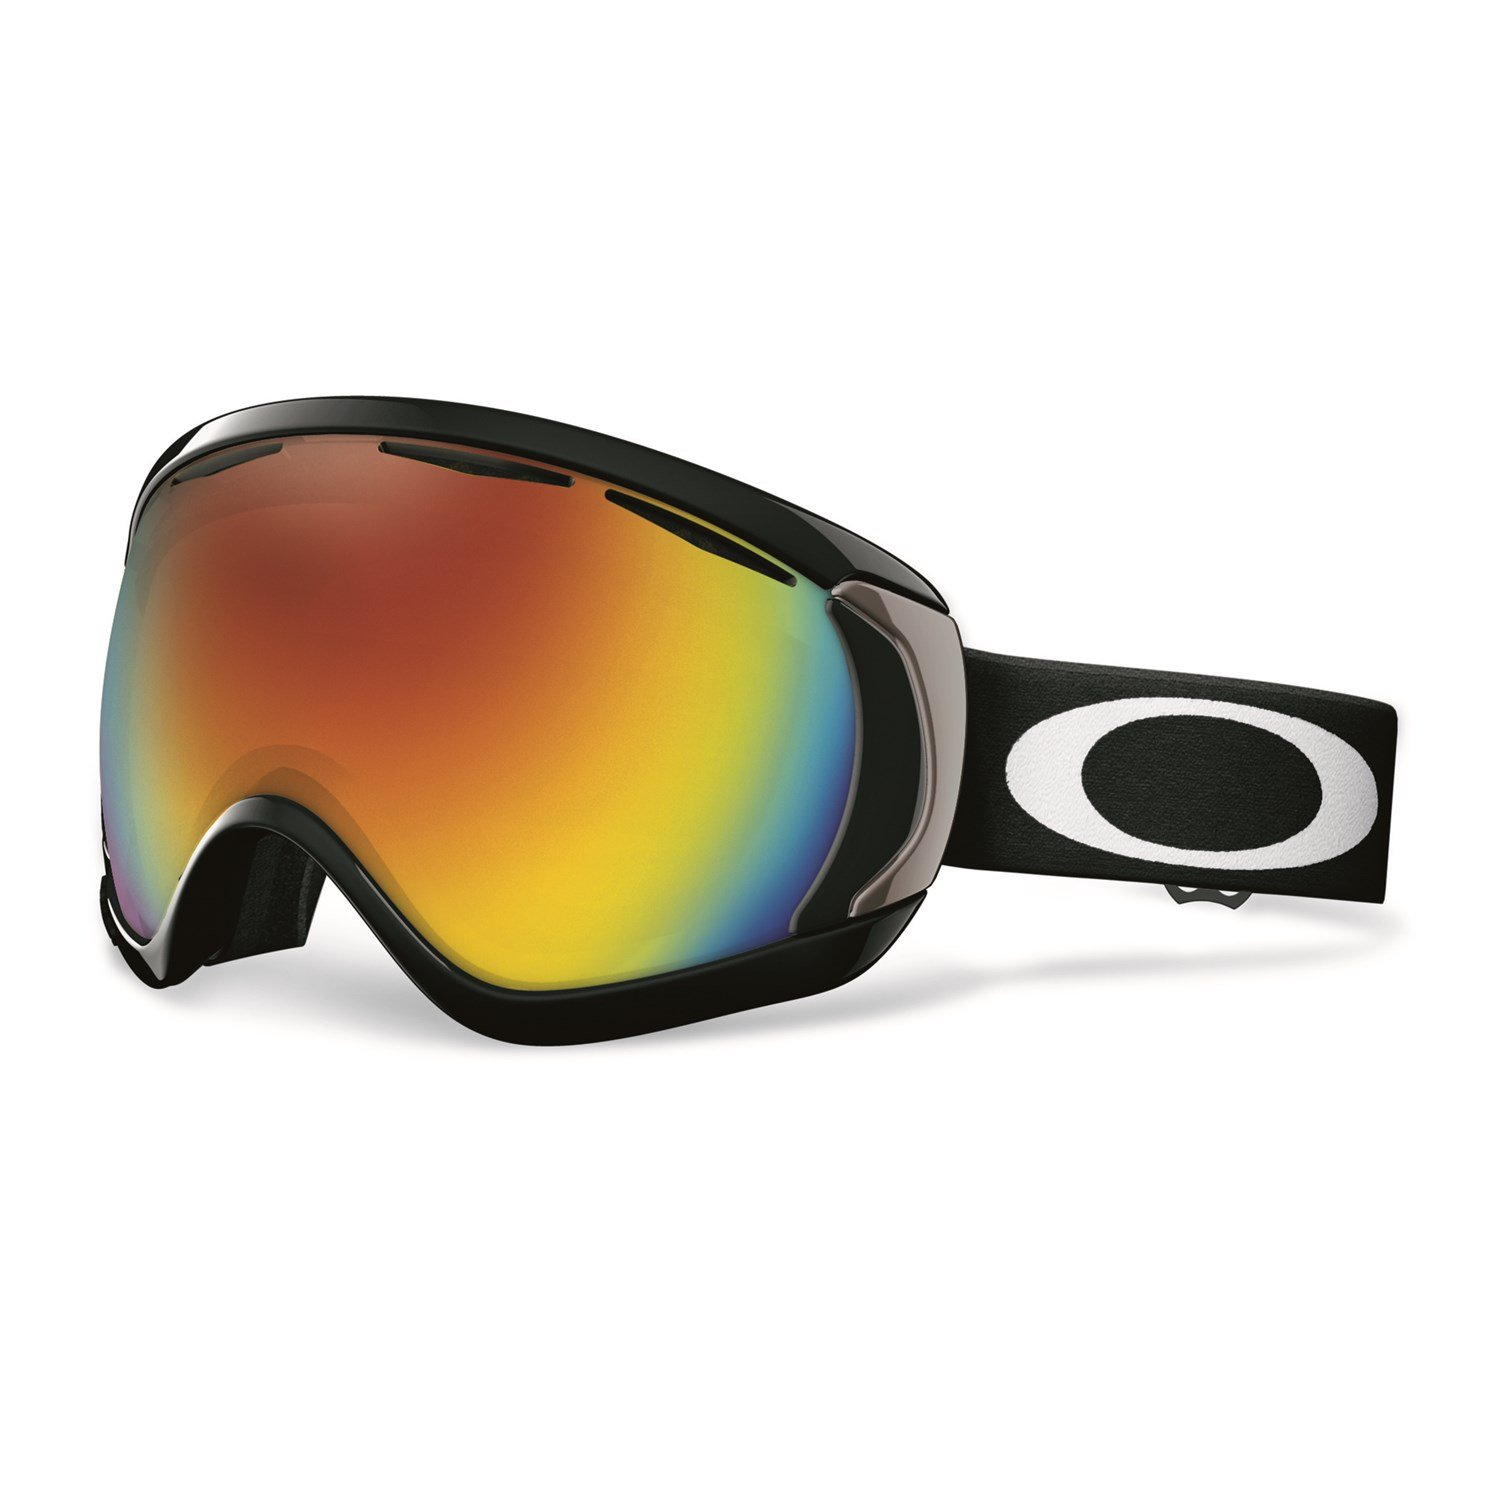 Oakley Ski Goggles Review